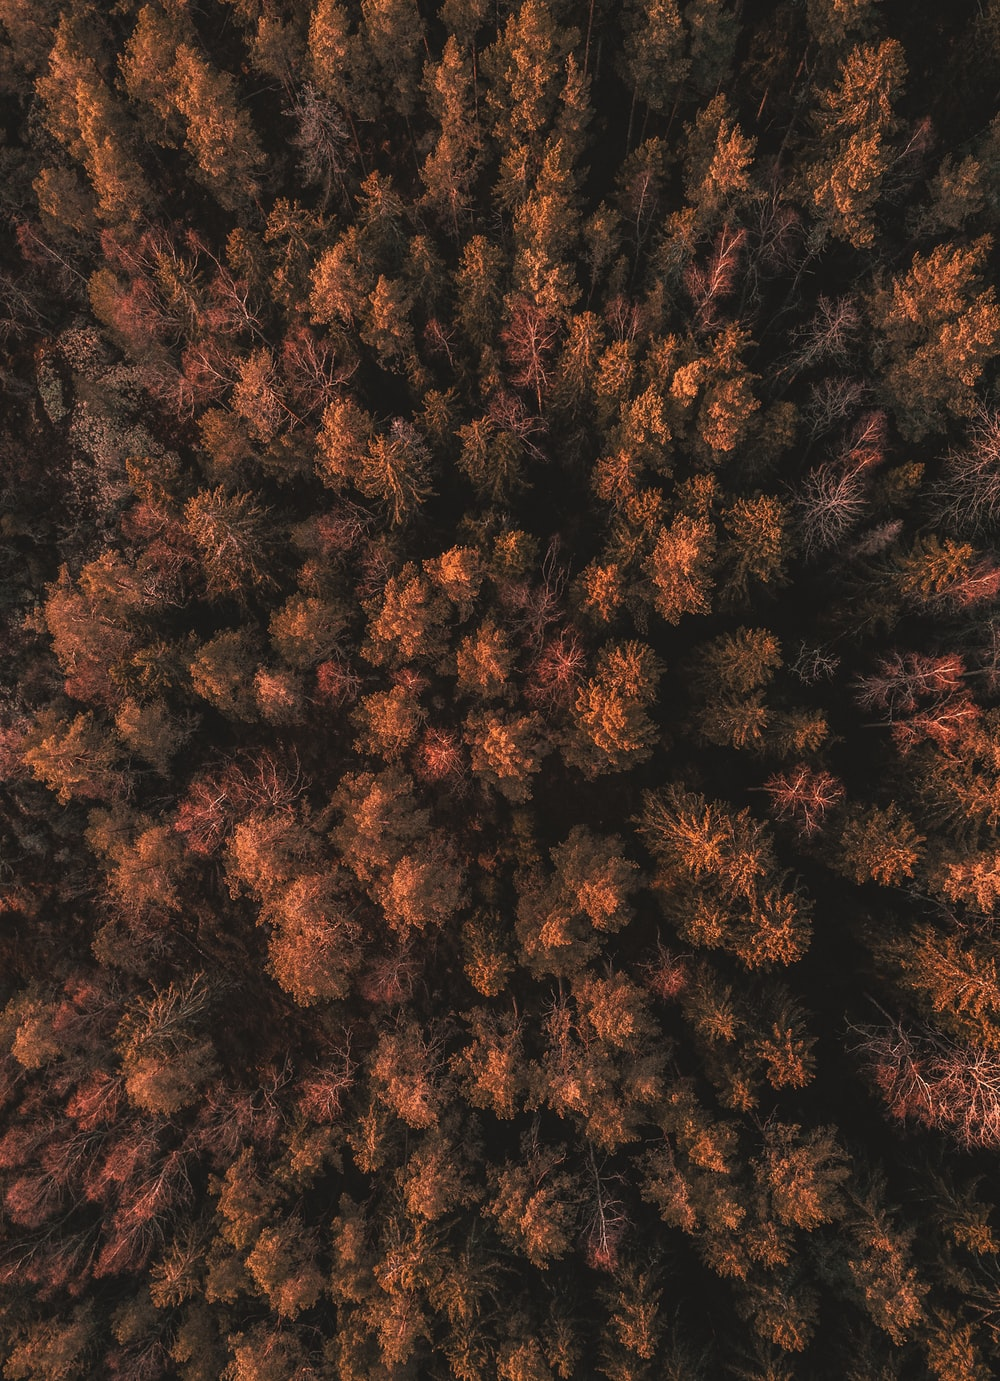 aerial photography of brown forest